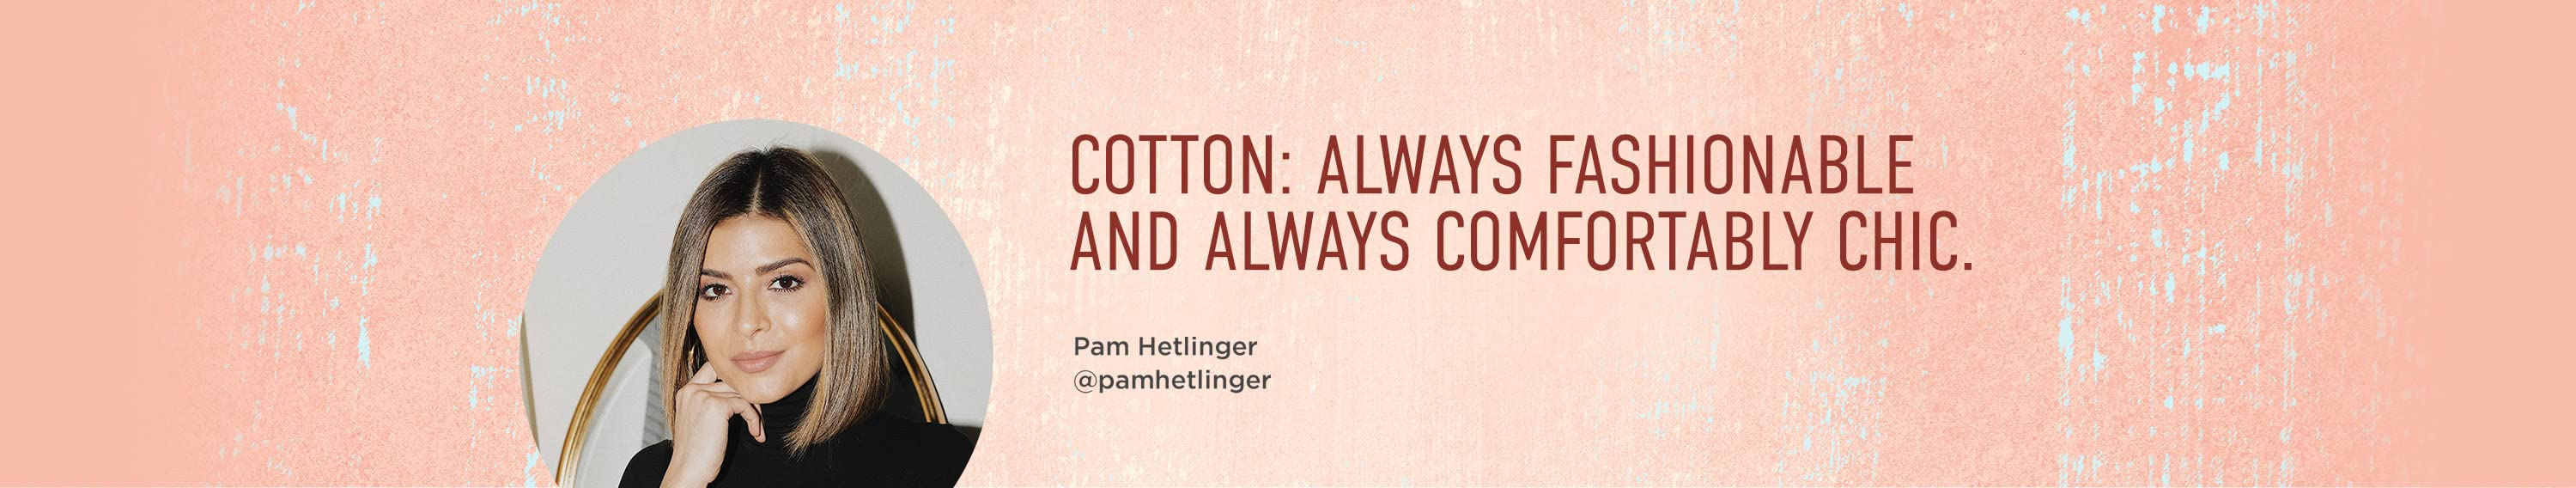 Cotton: Always fashionable and always comfortably chic.